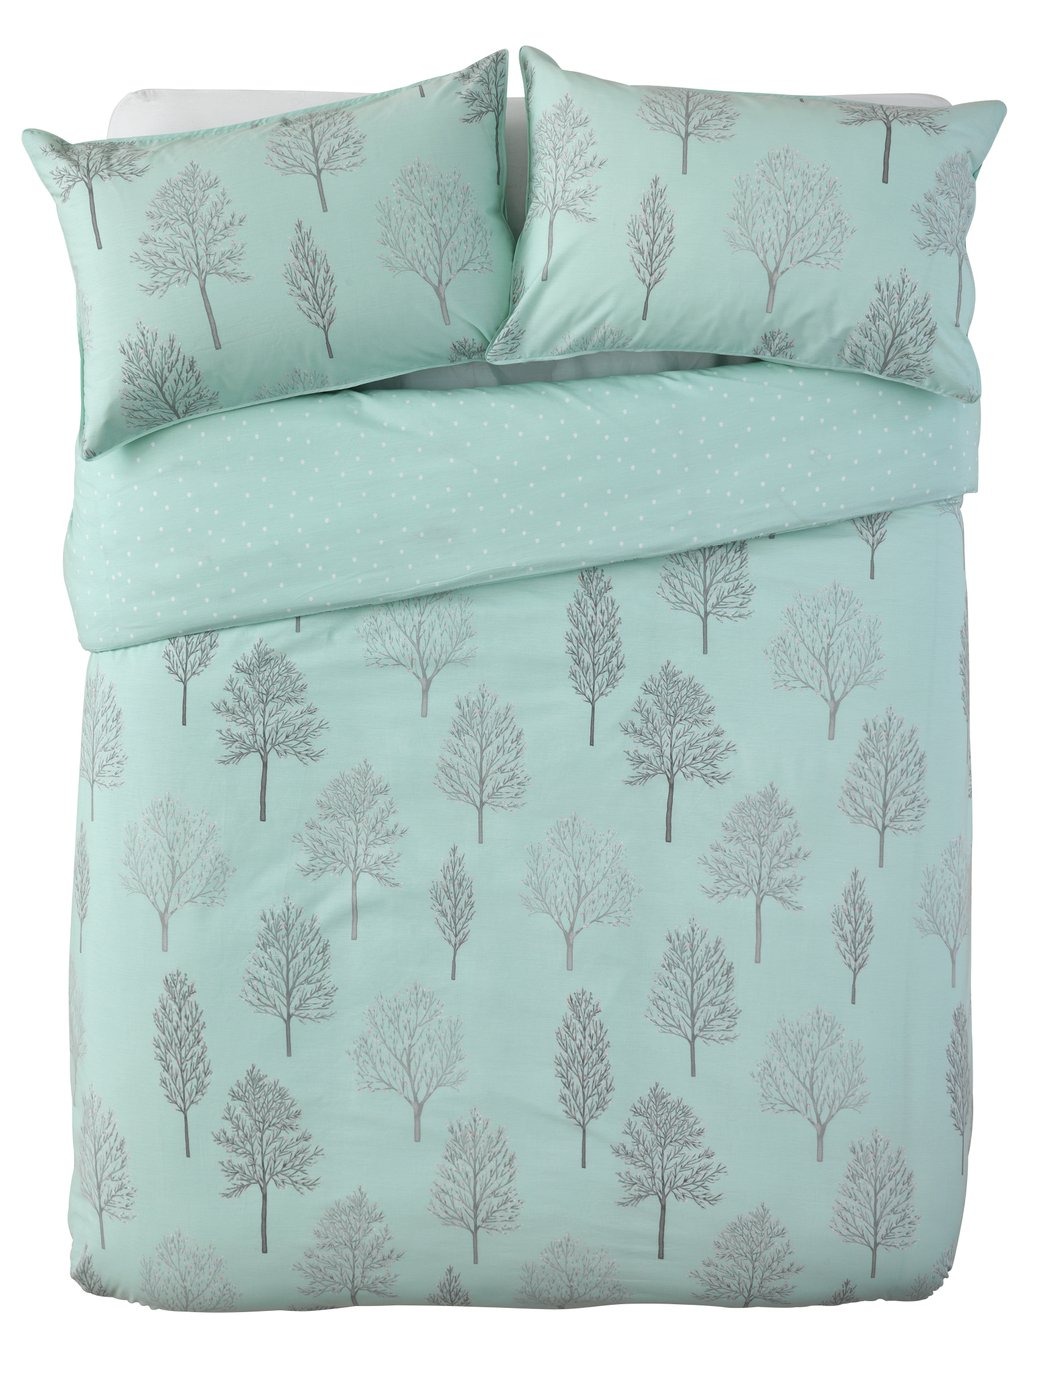 Argos Home Tree Print Bedding Set - Kingsize